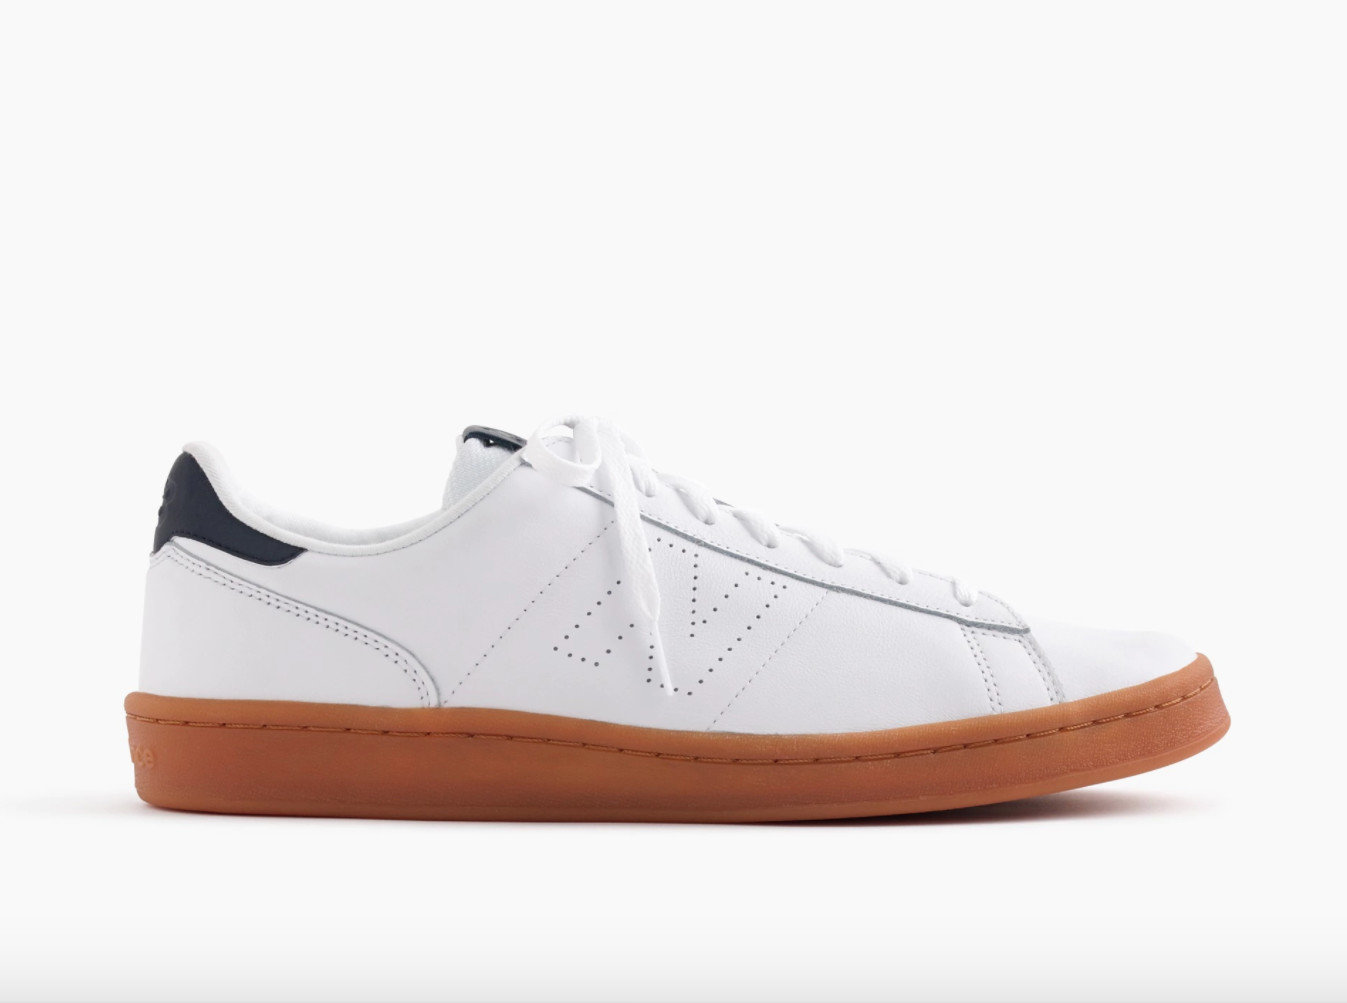 j crew new balance paris